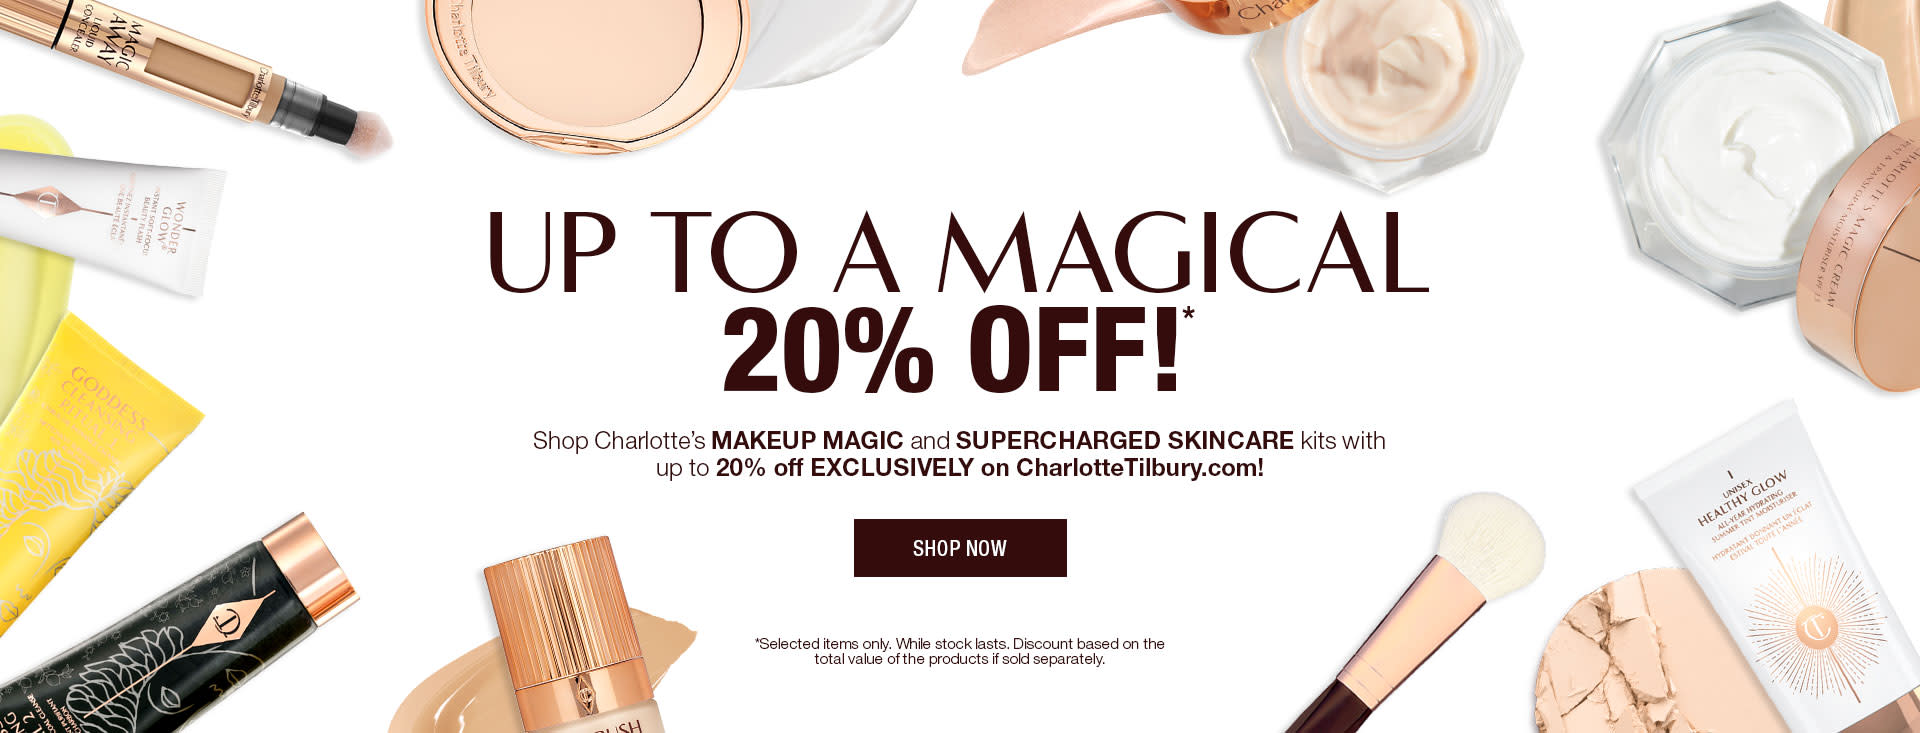 Generic Magical Savings Up To 20% Off!